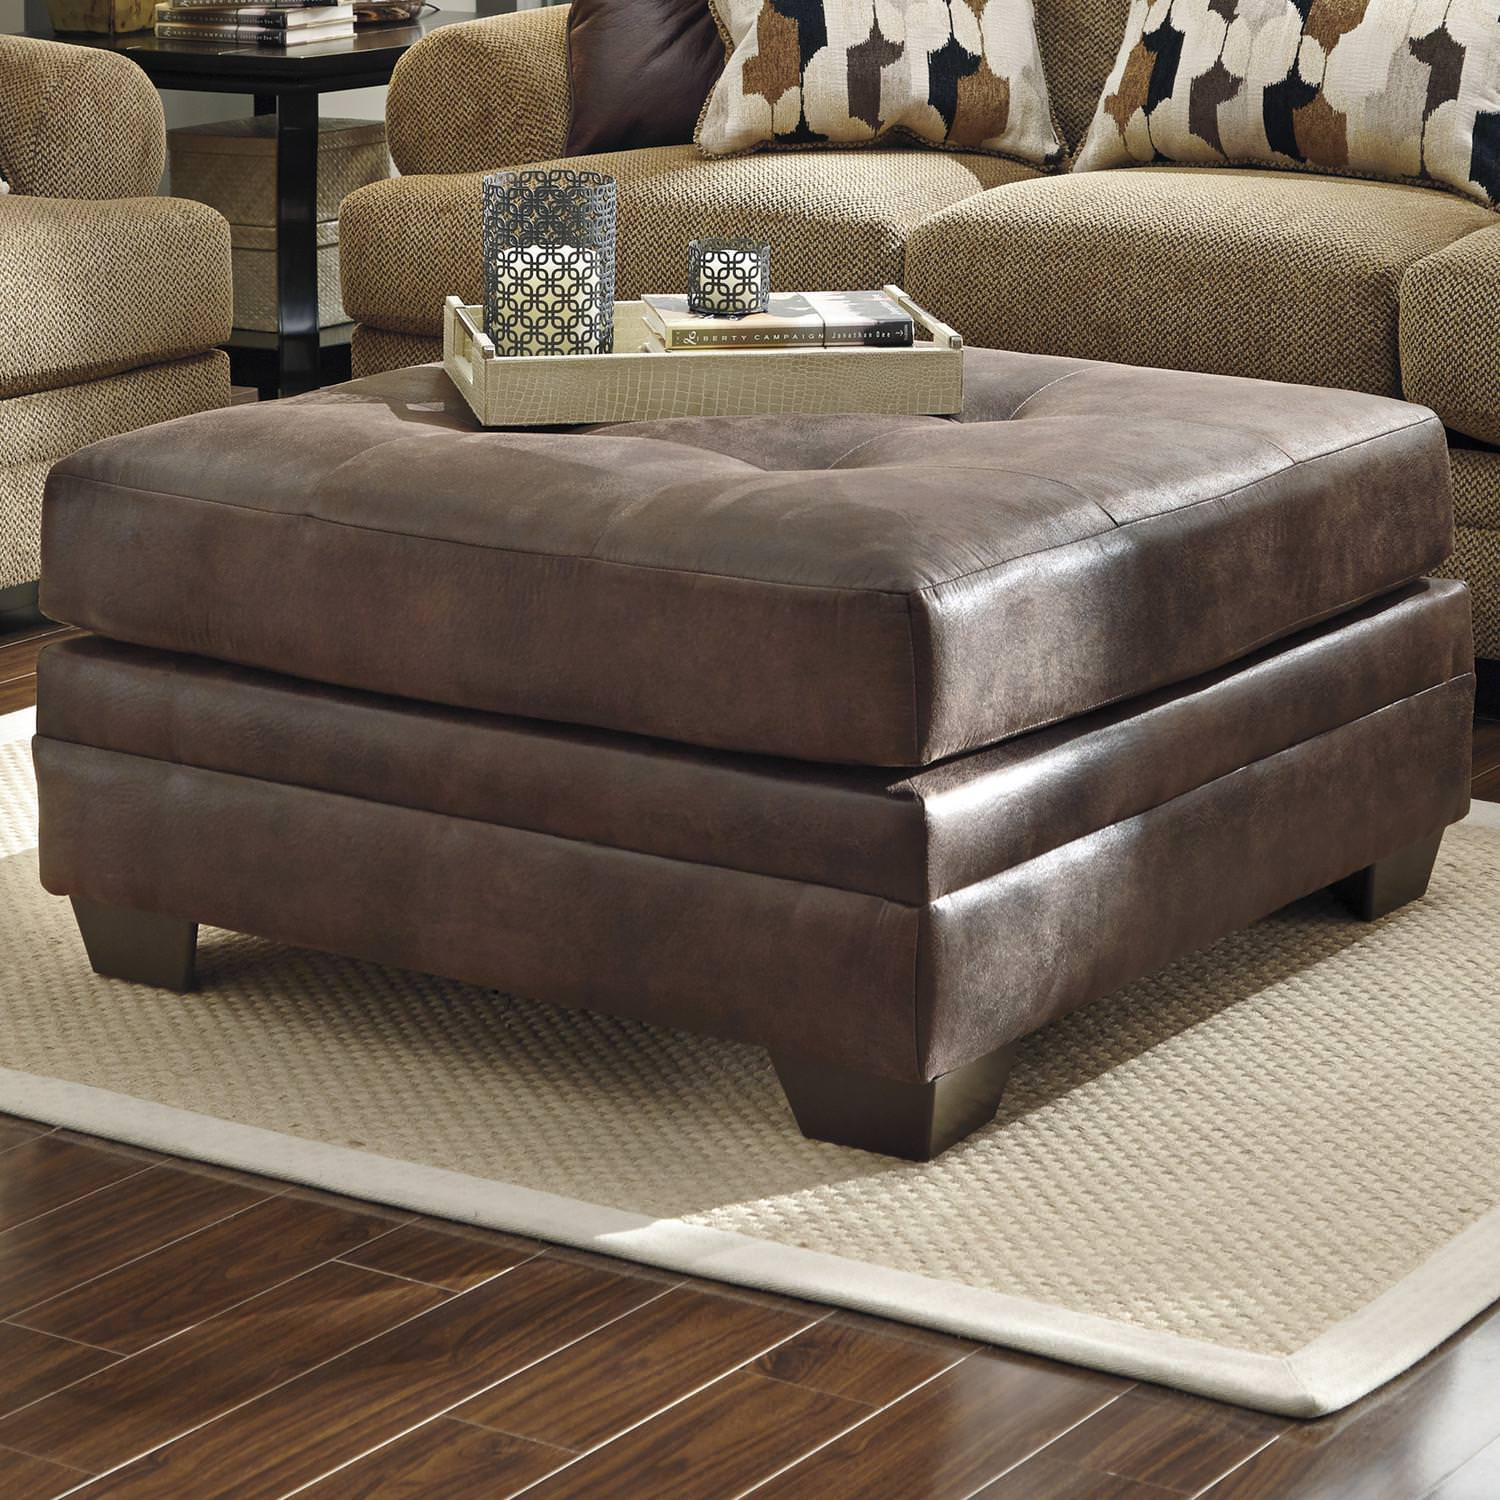 Image of: Small Oversized Ottoman